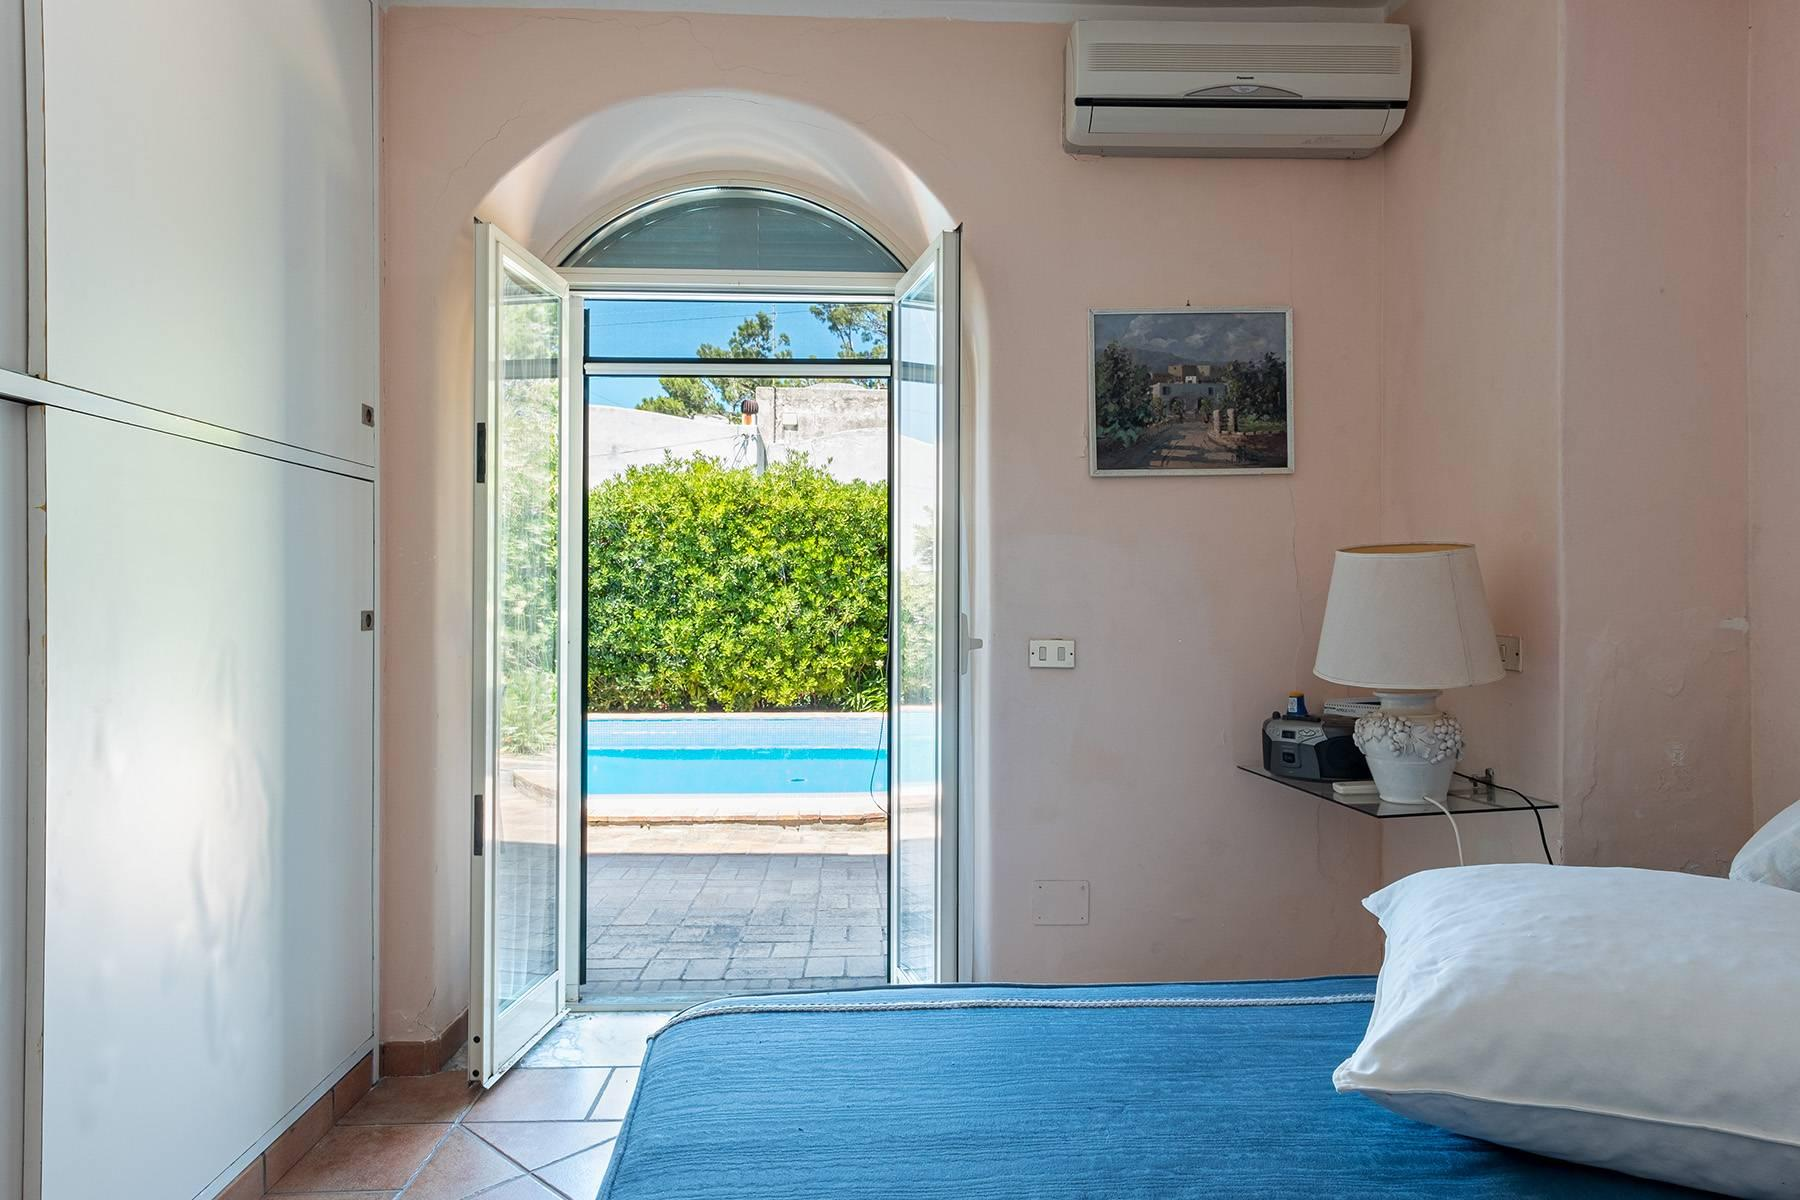 Charming villa with swimming pool in Anacapri - 14